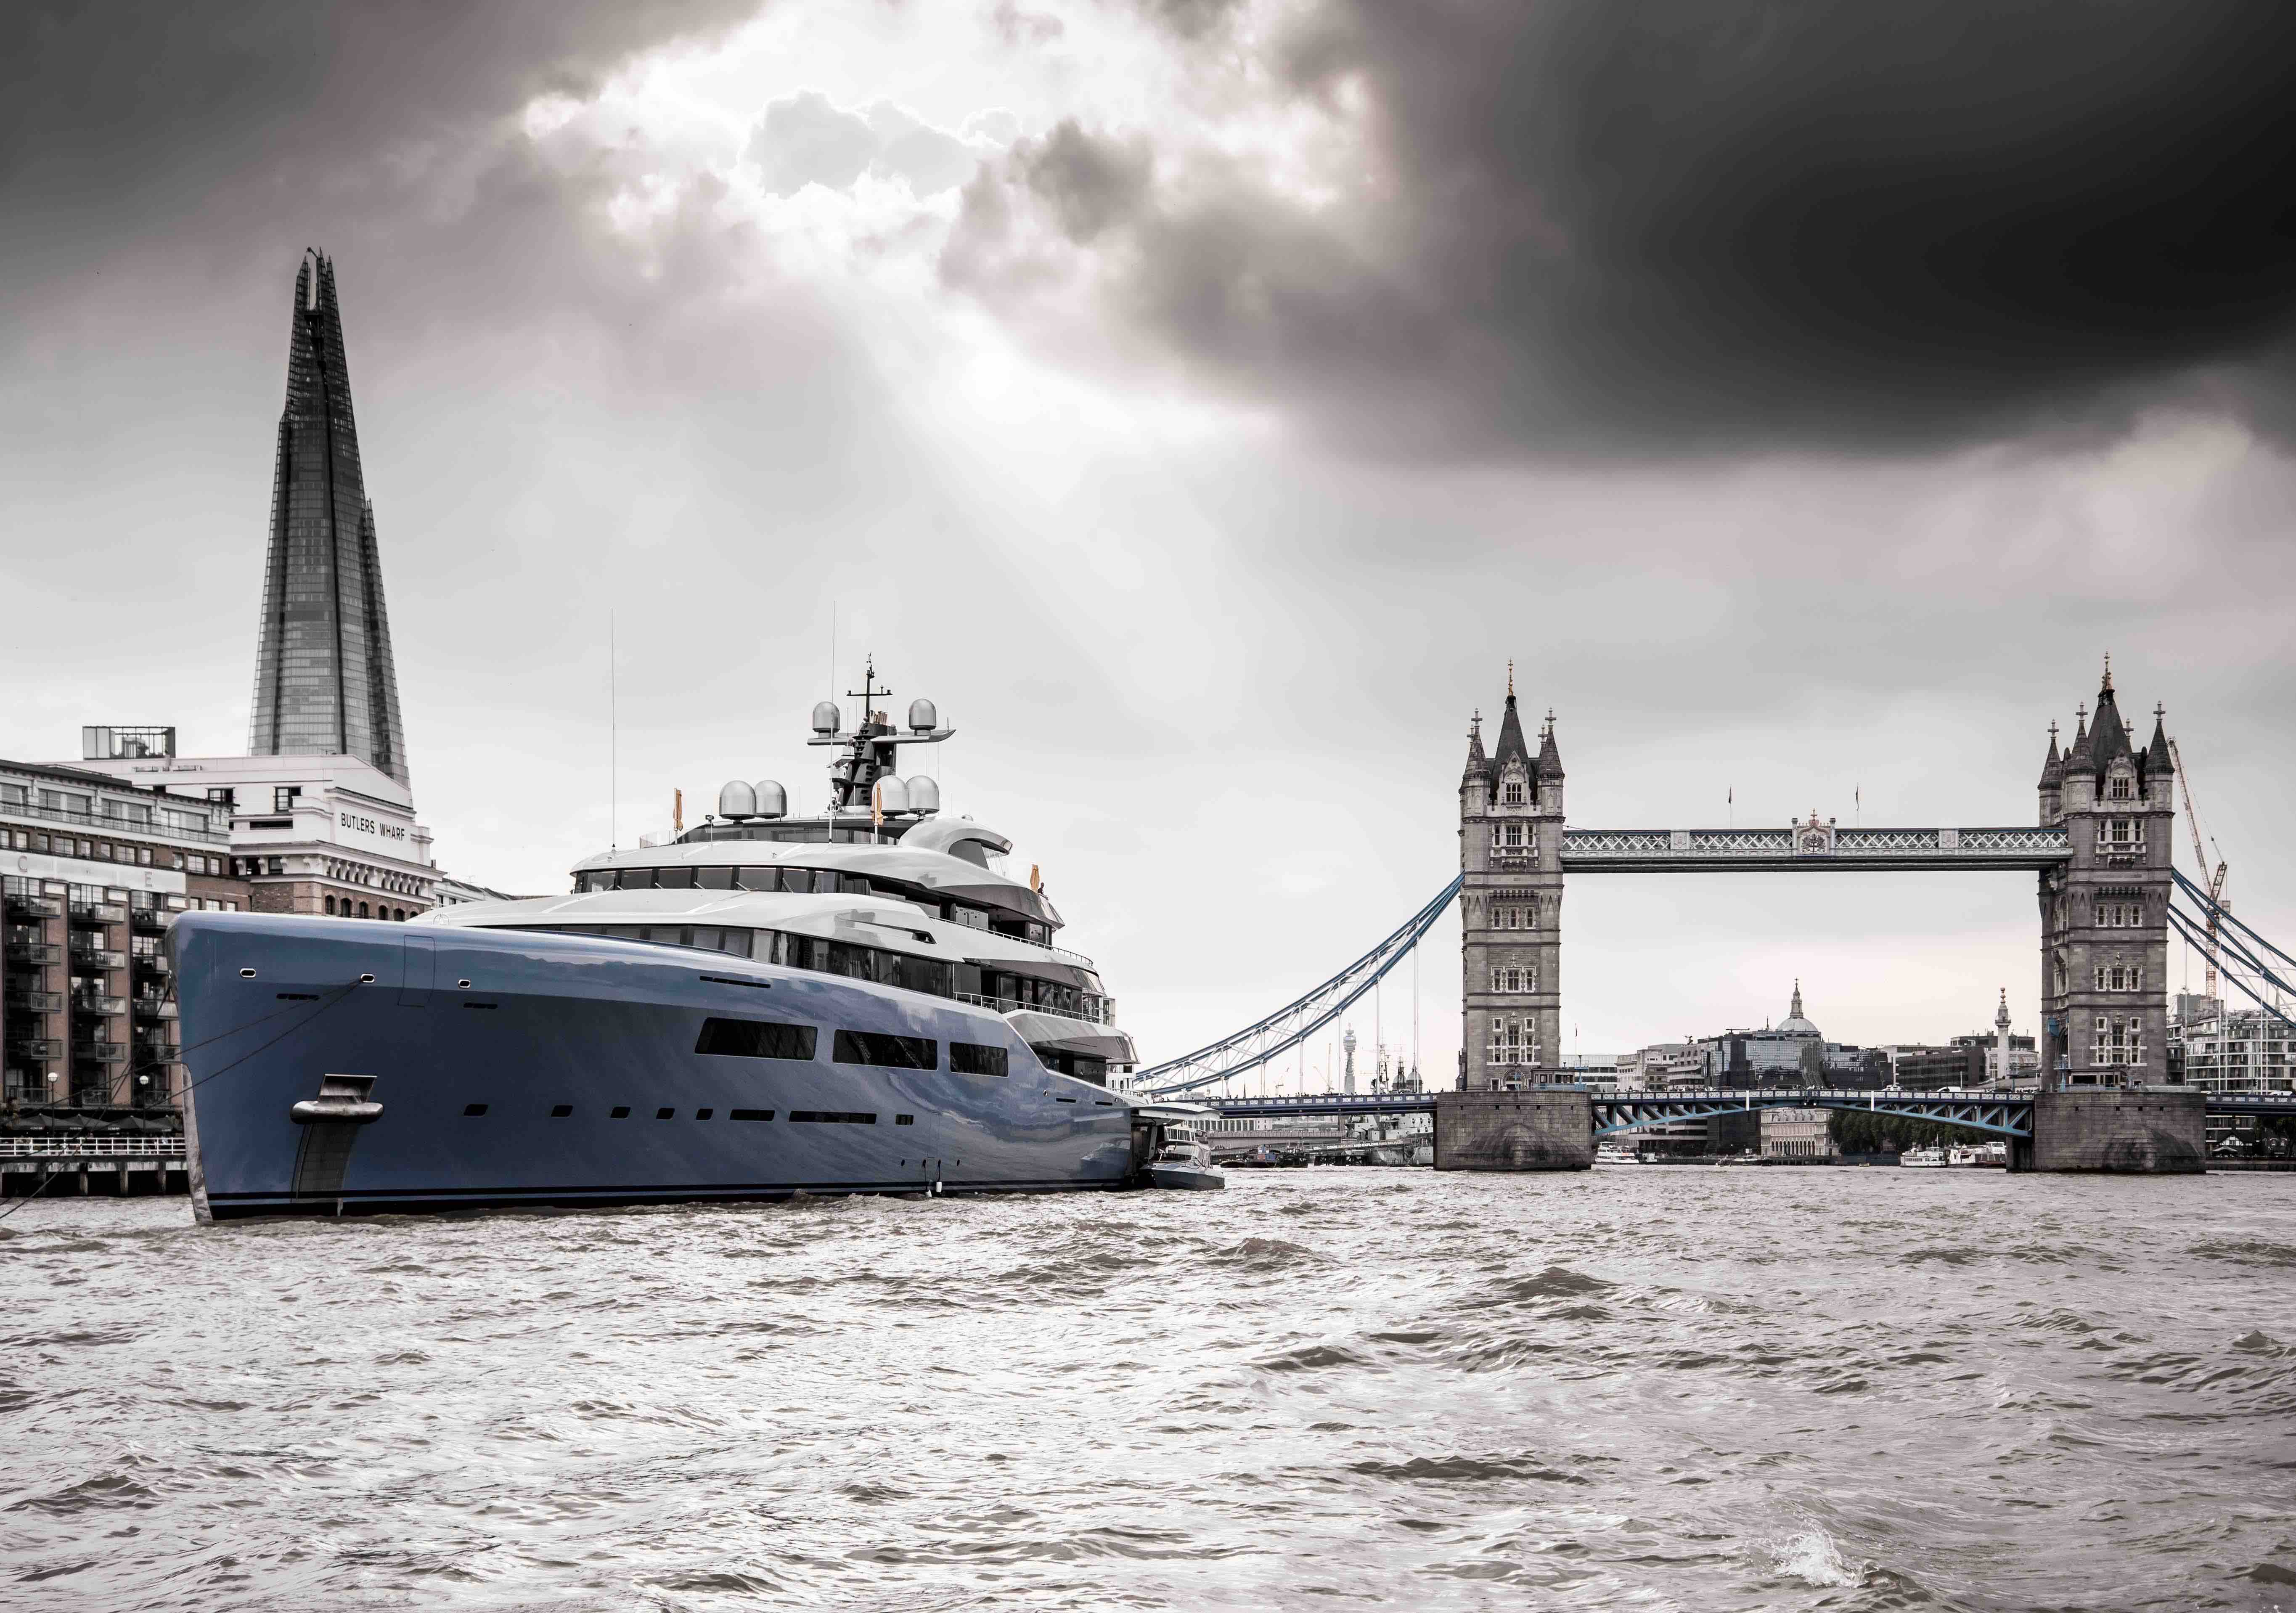 A Flair of Yacht Show on the River Thames